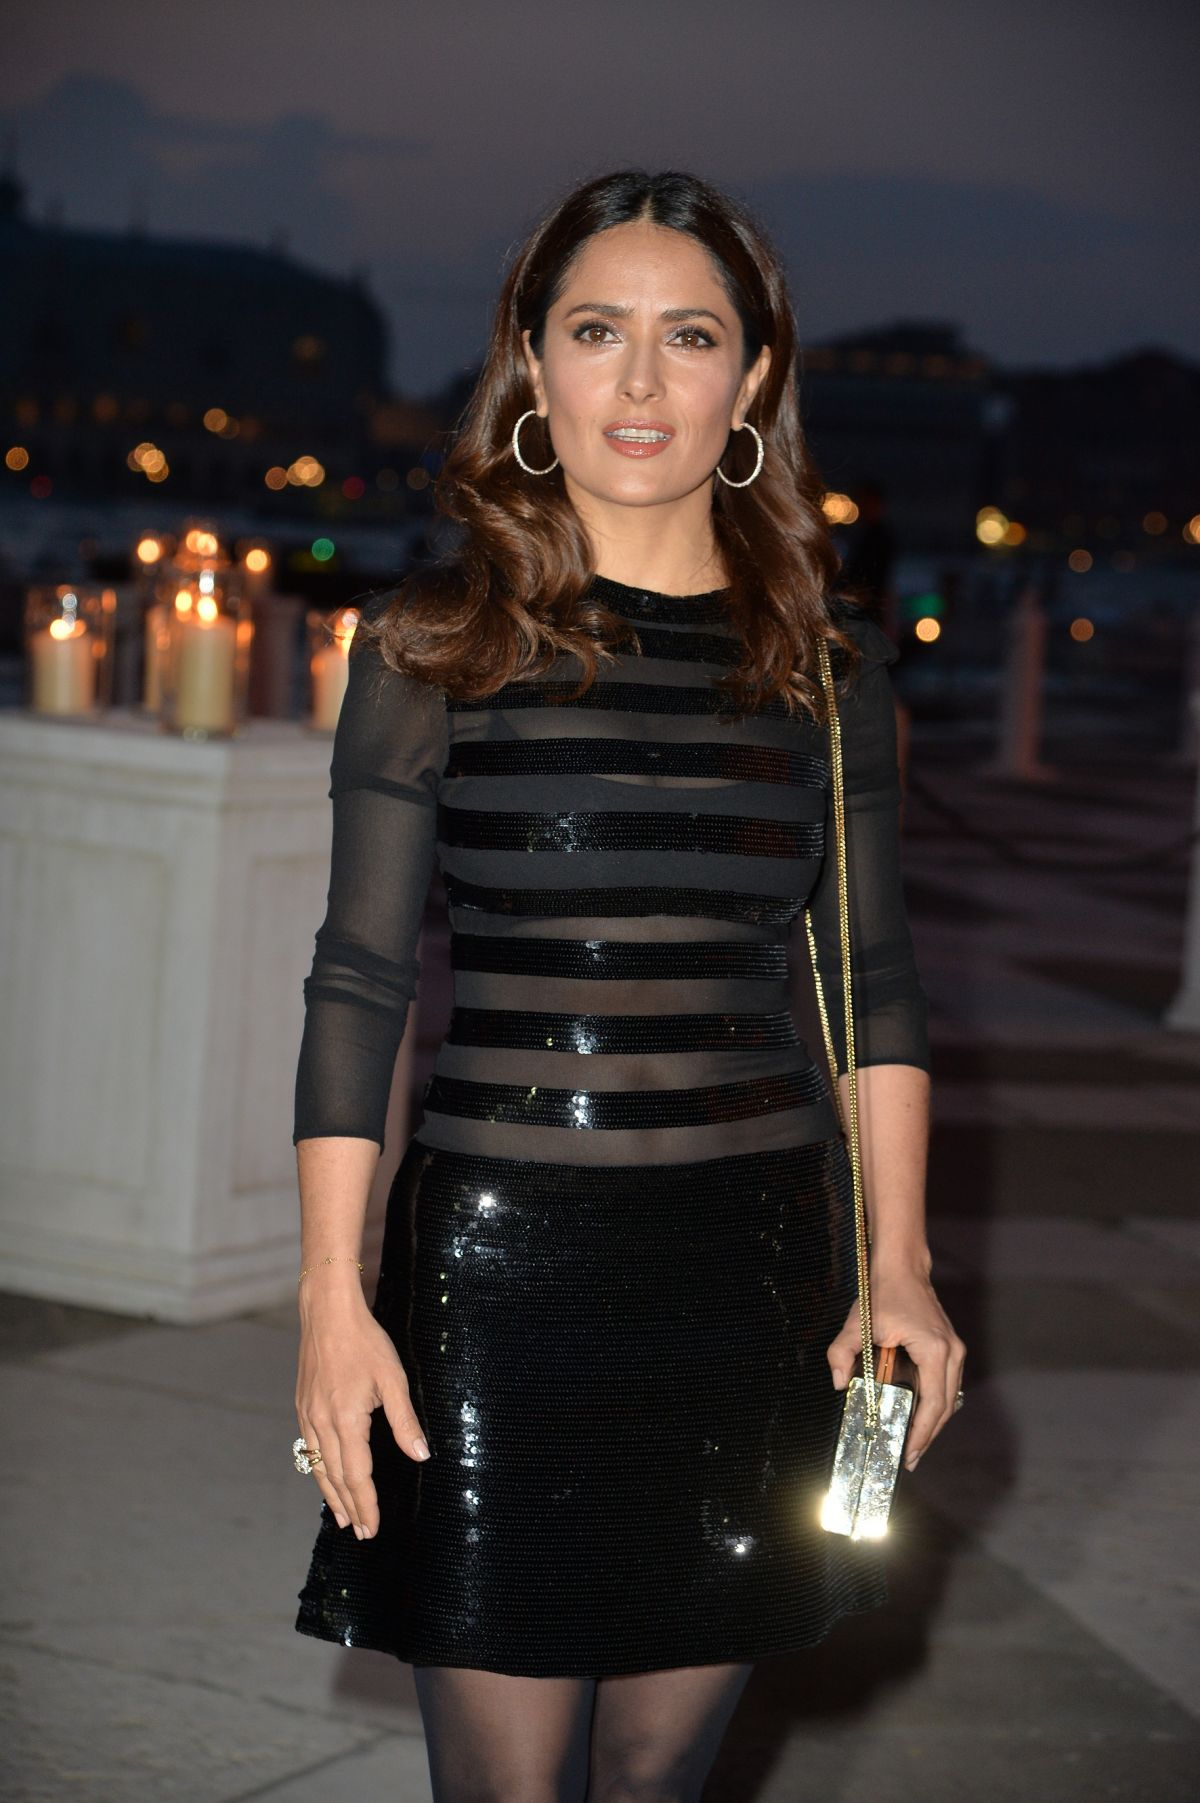 SALMA HAYEK at Pinault Party at 56th International Art Exhibition in Venice